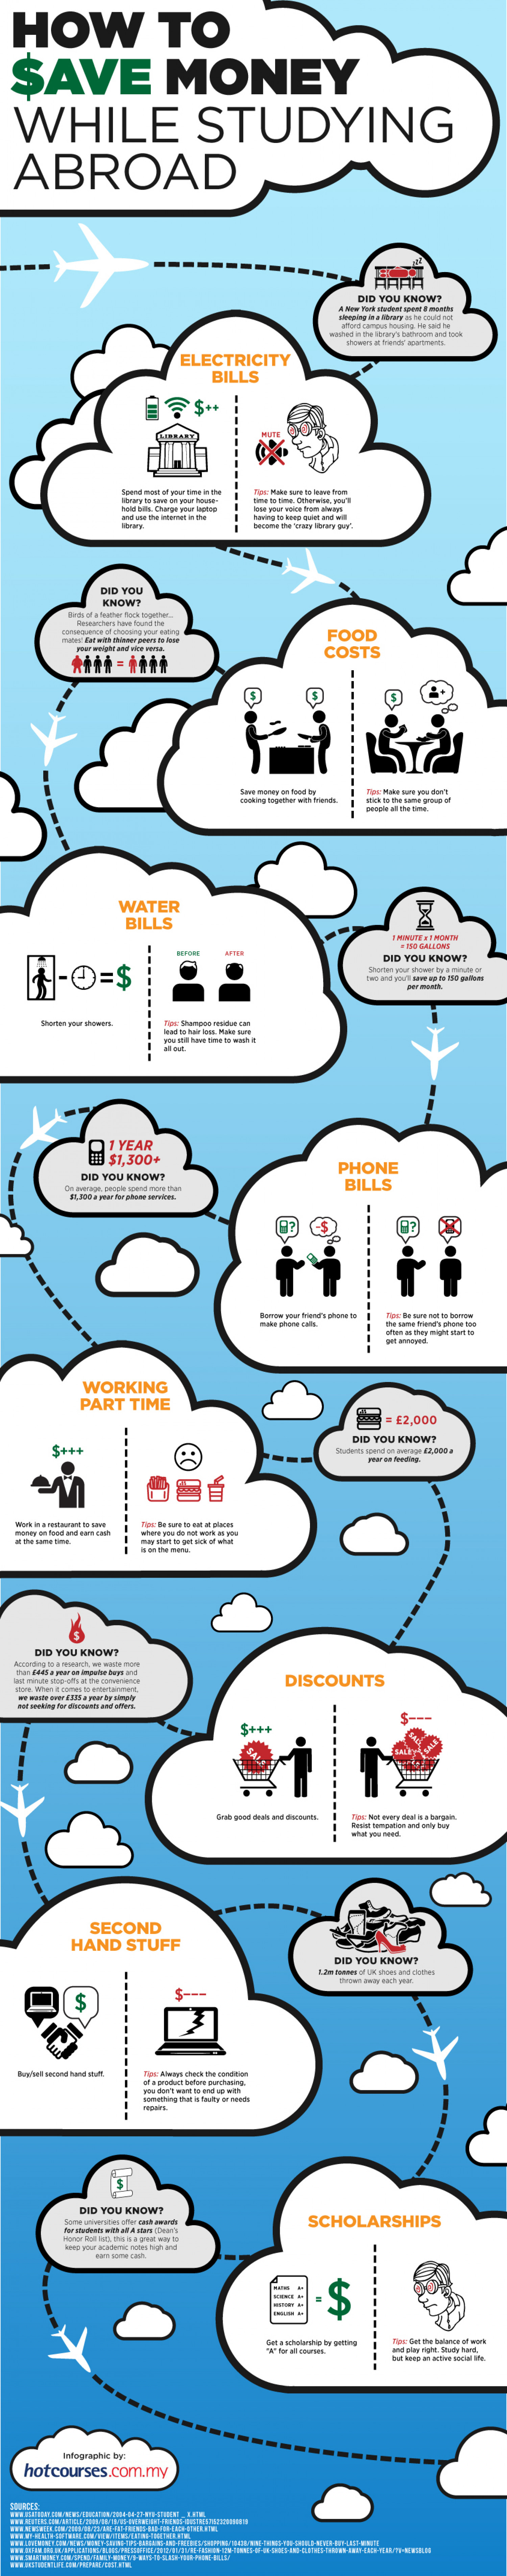 How To Save Money While Studying Abroad Infographic